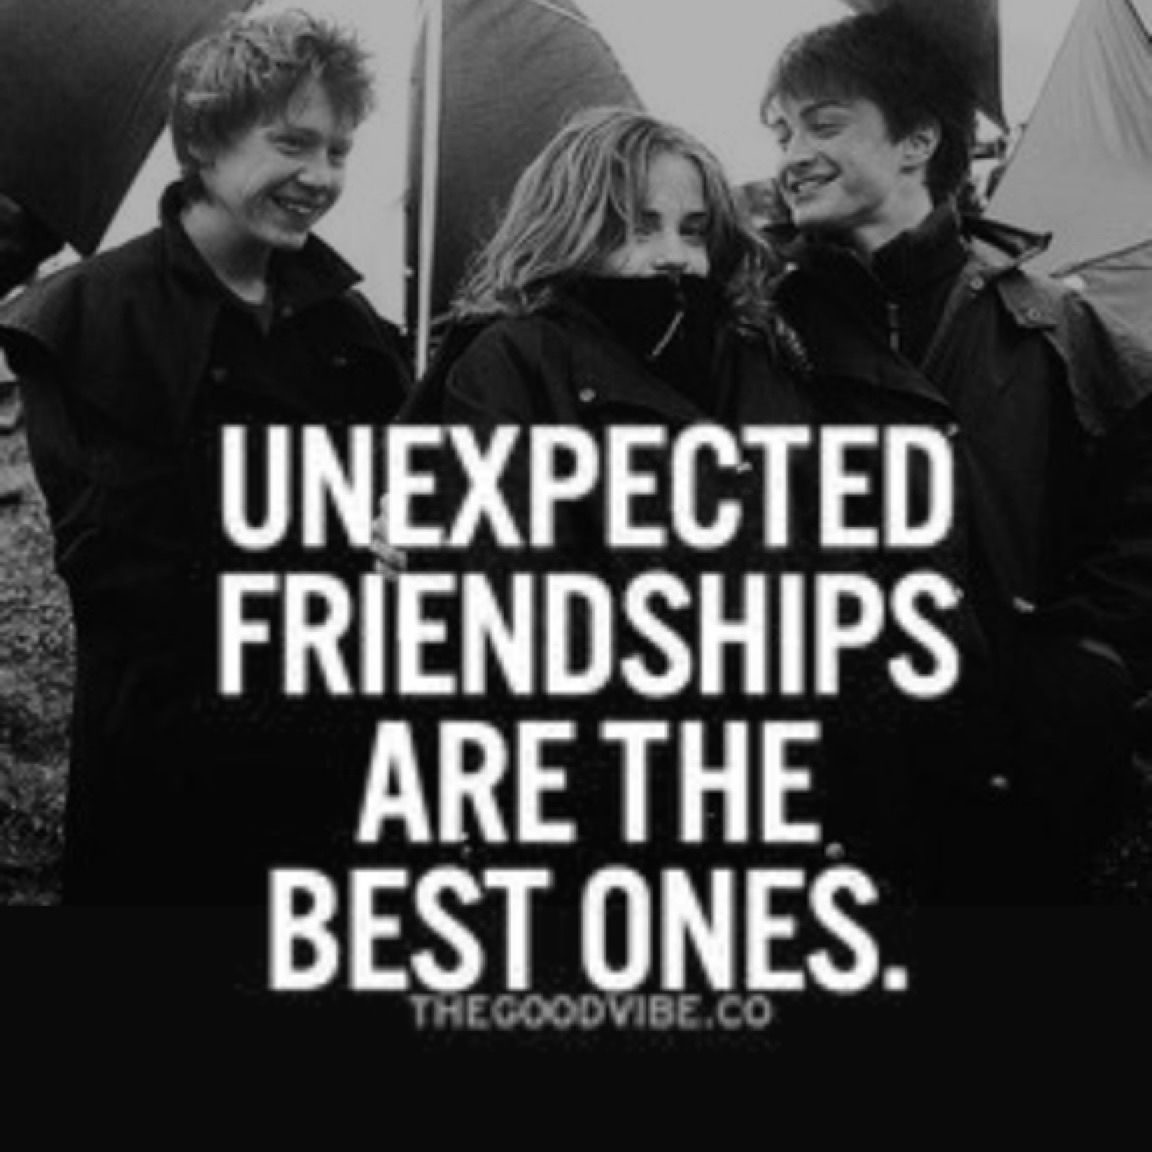 Harry Potter Quotes About Friendship The Golden Trio The Best Friends  Quotes  Pinterest  Harry